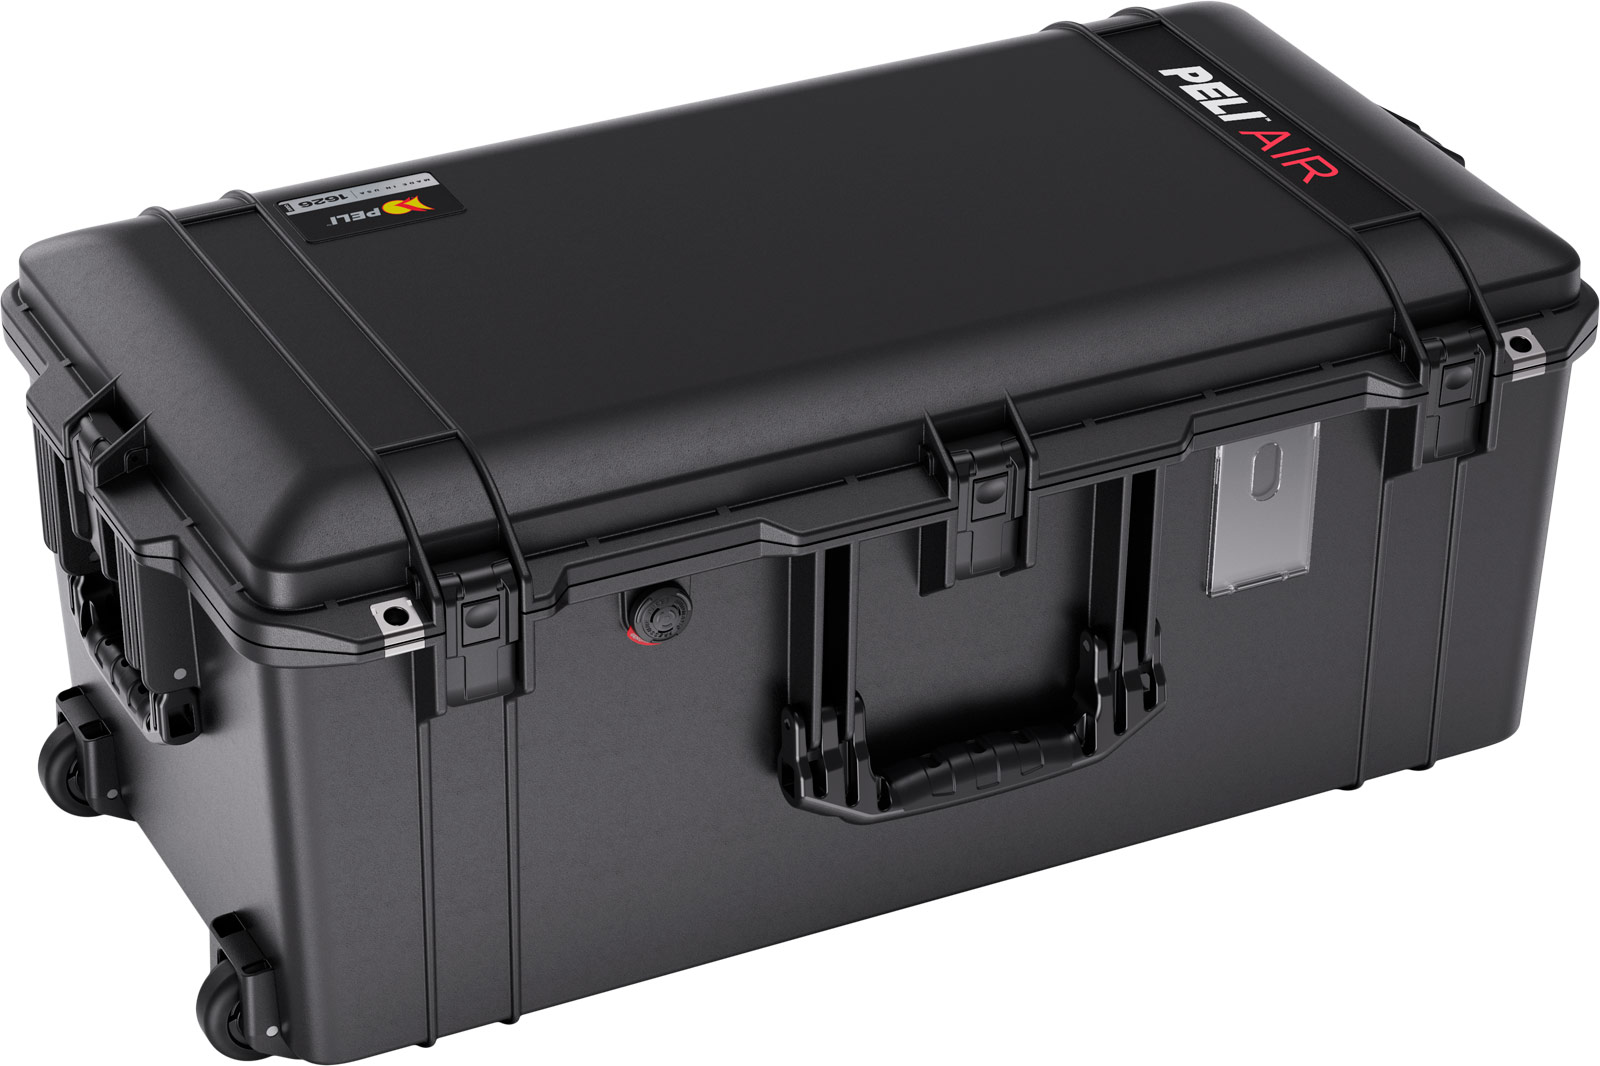 peli 1626 air deep long case